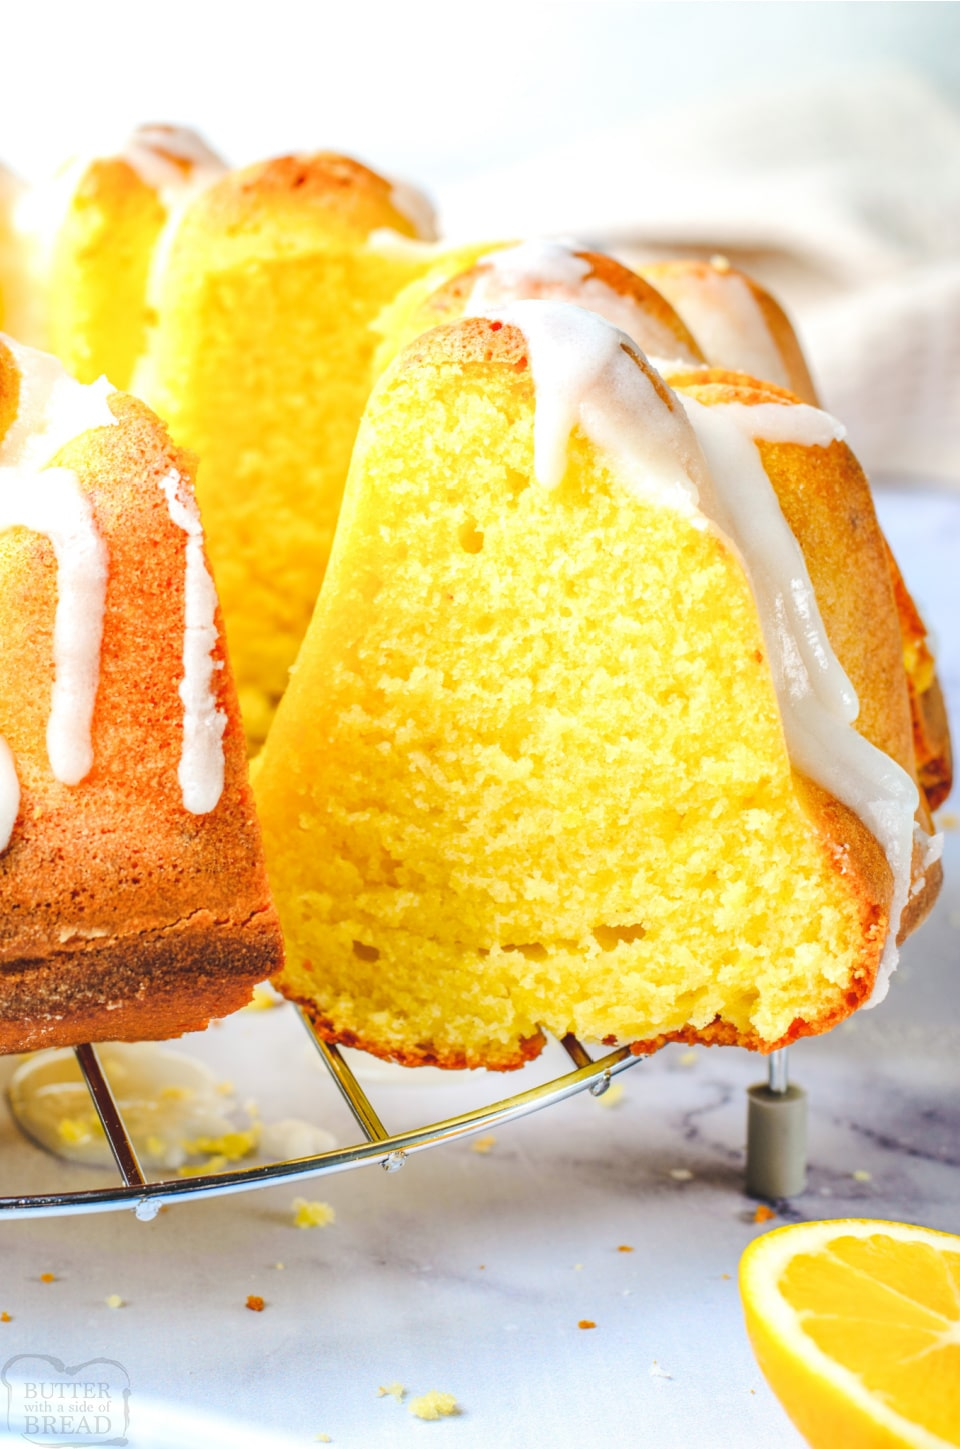 Iced Lemon Bundt Cake recipe